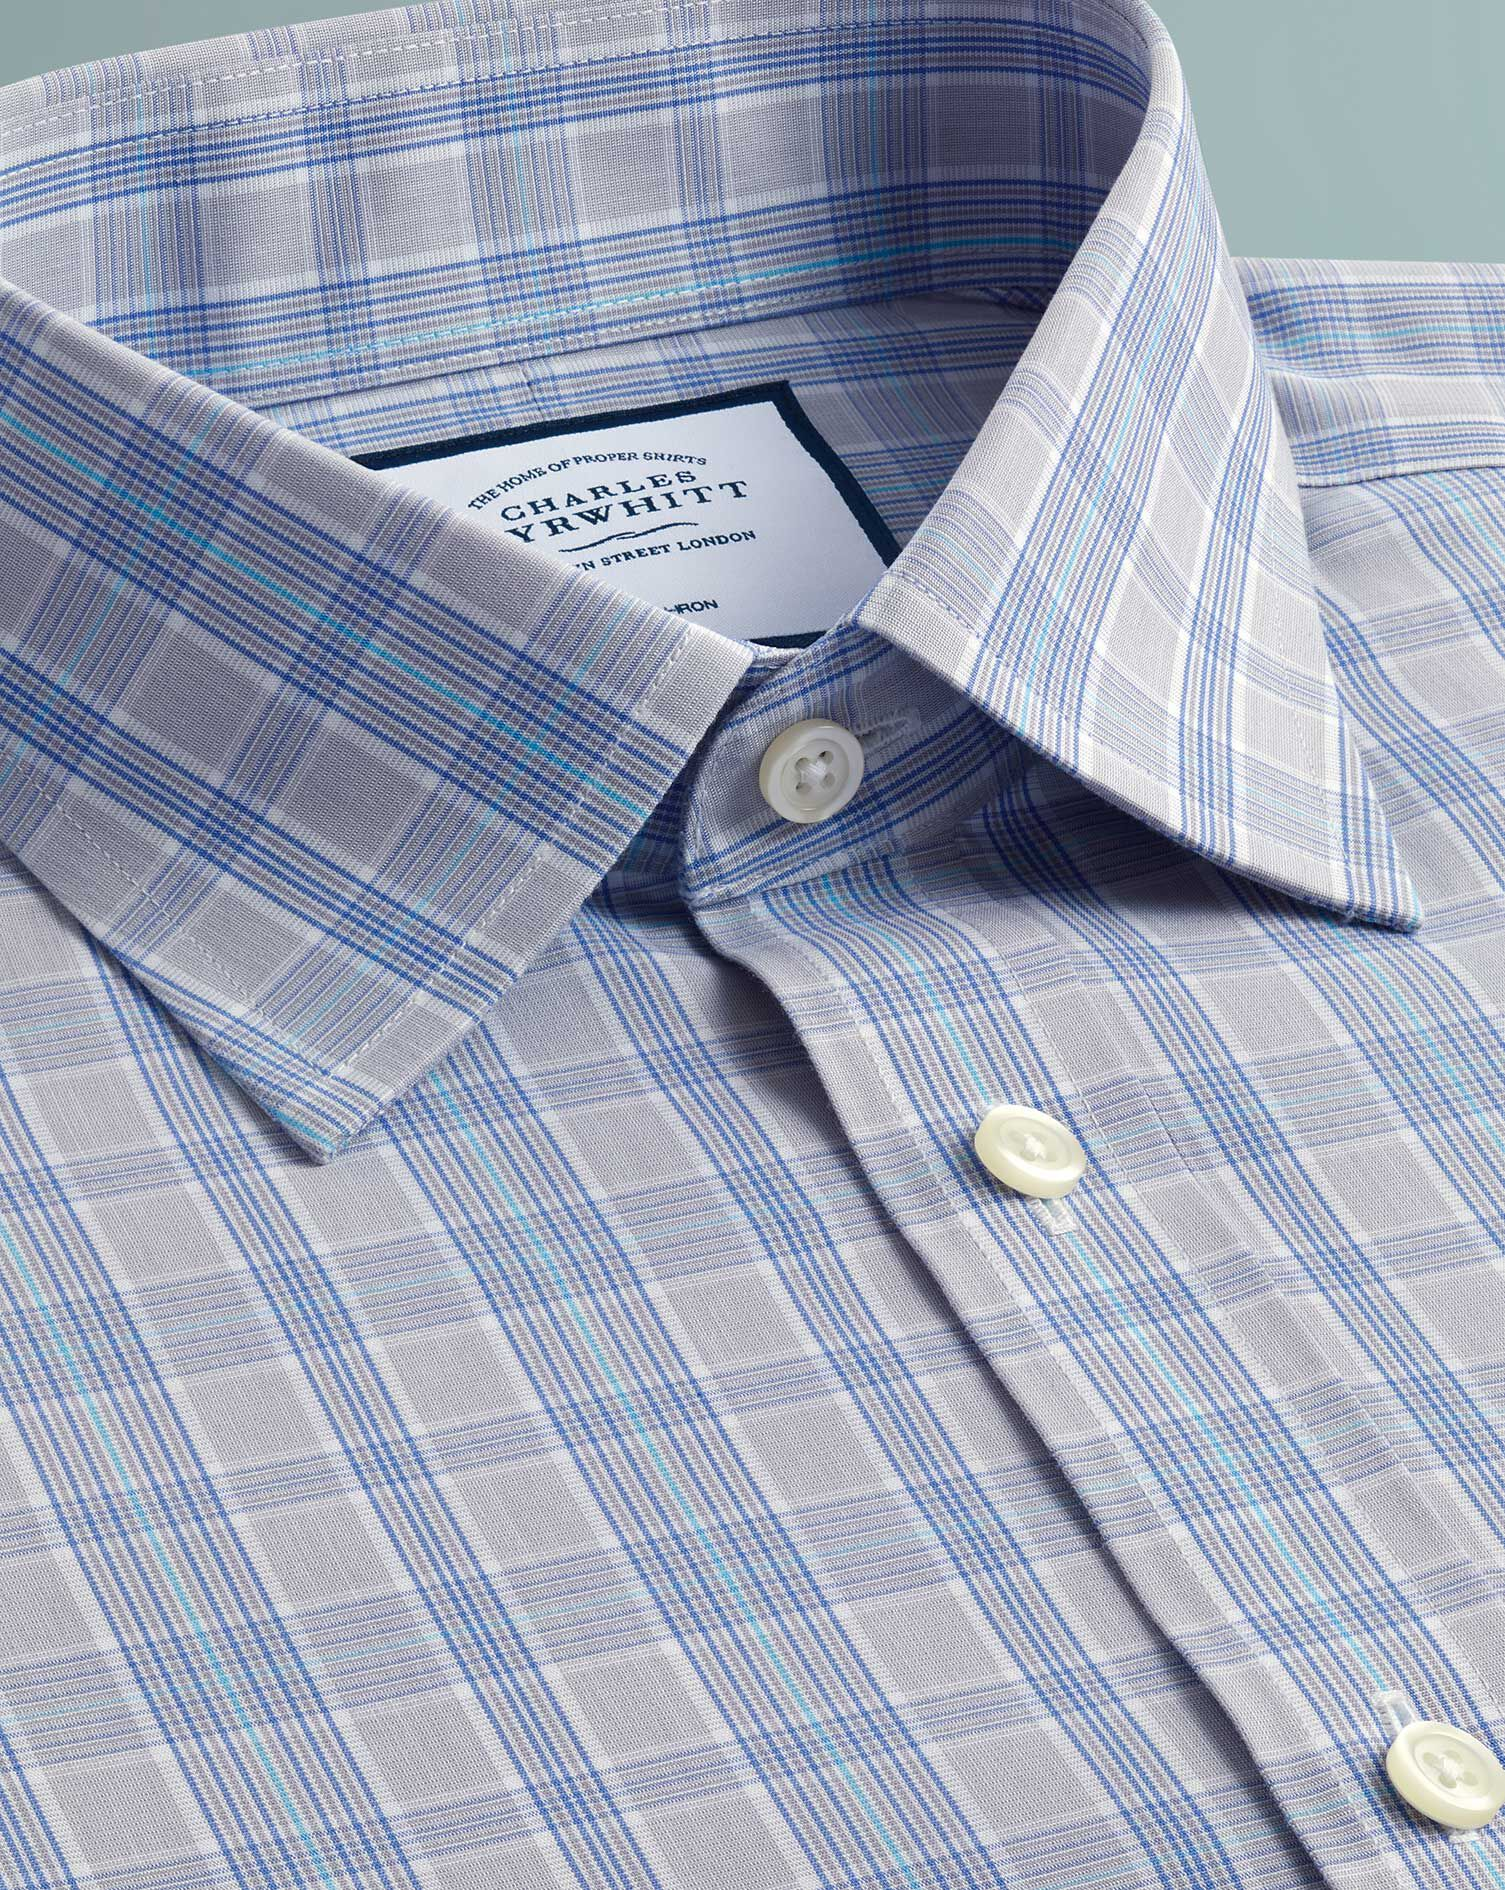 Extra Slim Fit Non-Iron Prince Of Wales Grey and Aqua Cotton Formal Shirt Double Cuff Size 15.5/34 b